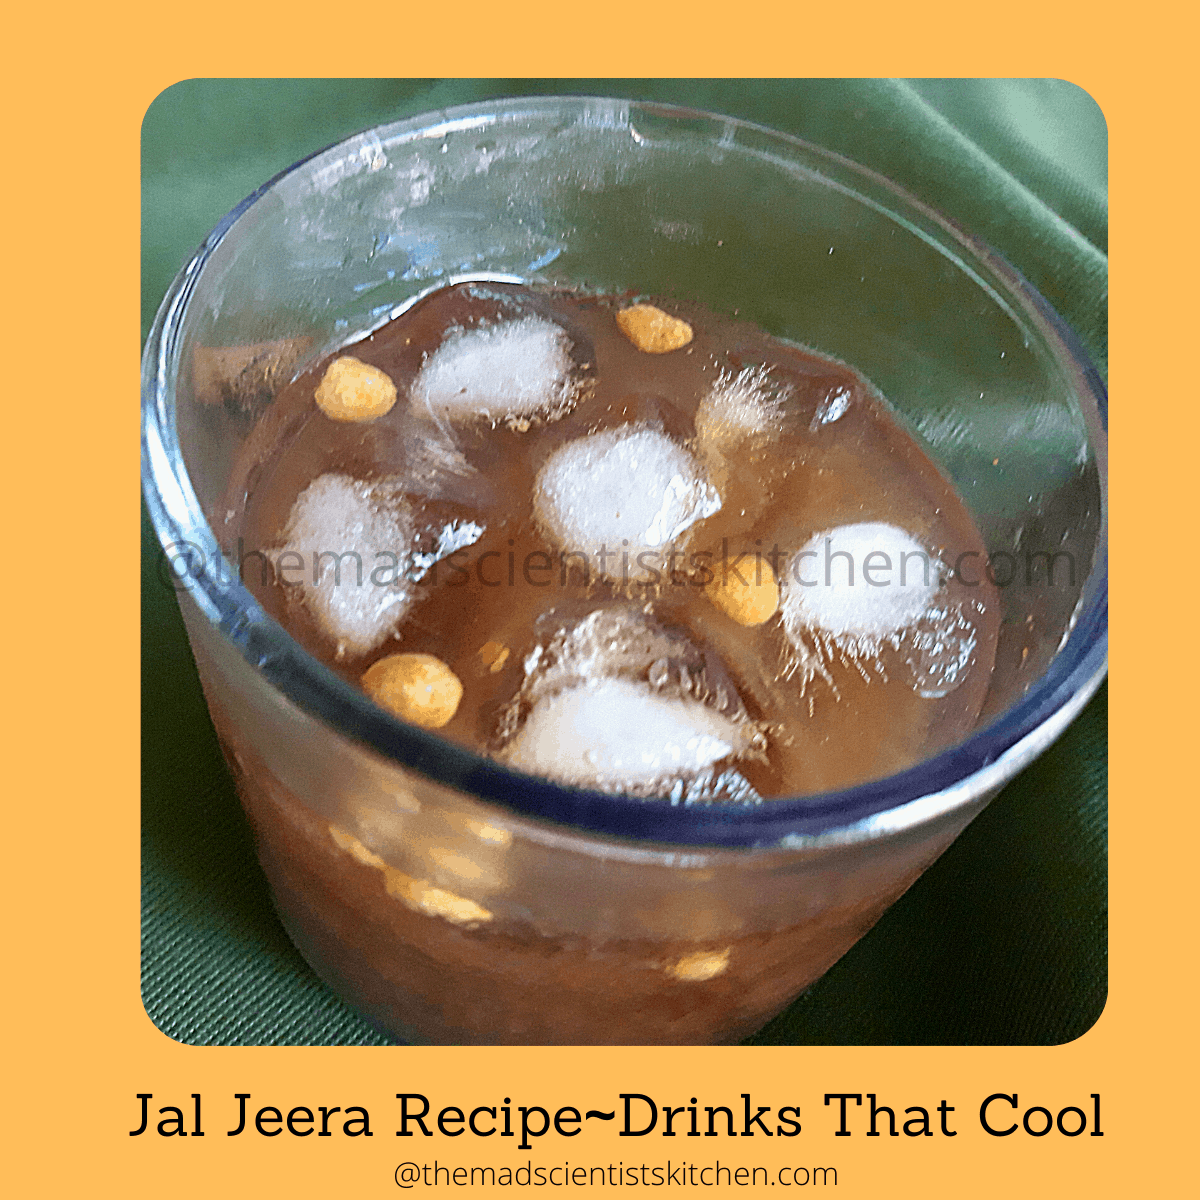 Delicious Jal Jeera,a summer cooler